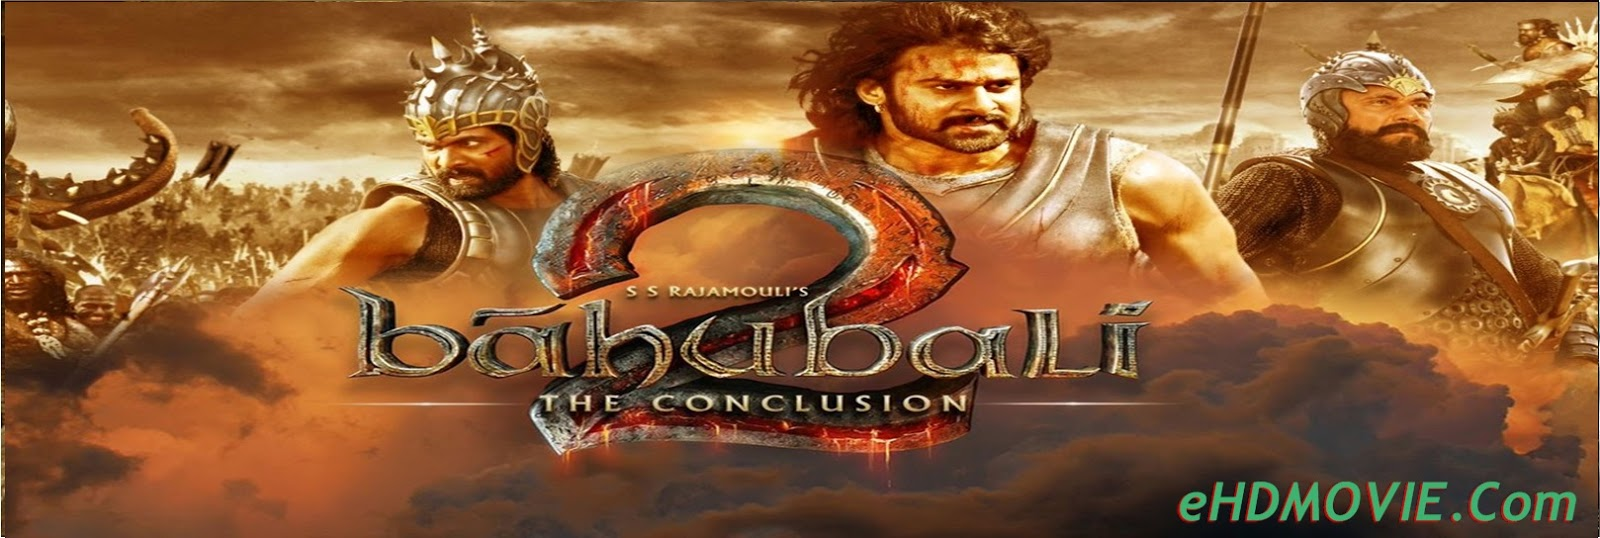 Baahubali 2: The Conclusion 2017 Full Movie Hindi 1080p - 720p - HEVC – 480p ORG BRRip 600MB - 1GB - 1.5GB - 4GB ESubs Free Download